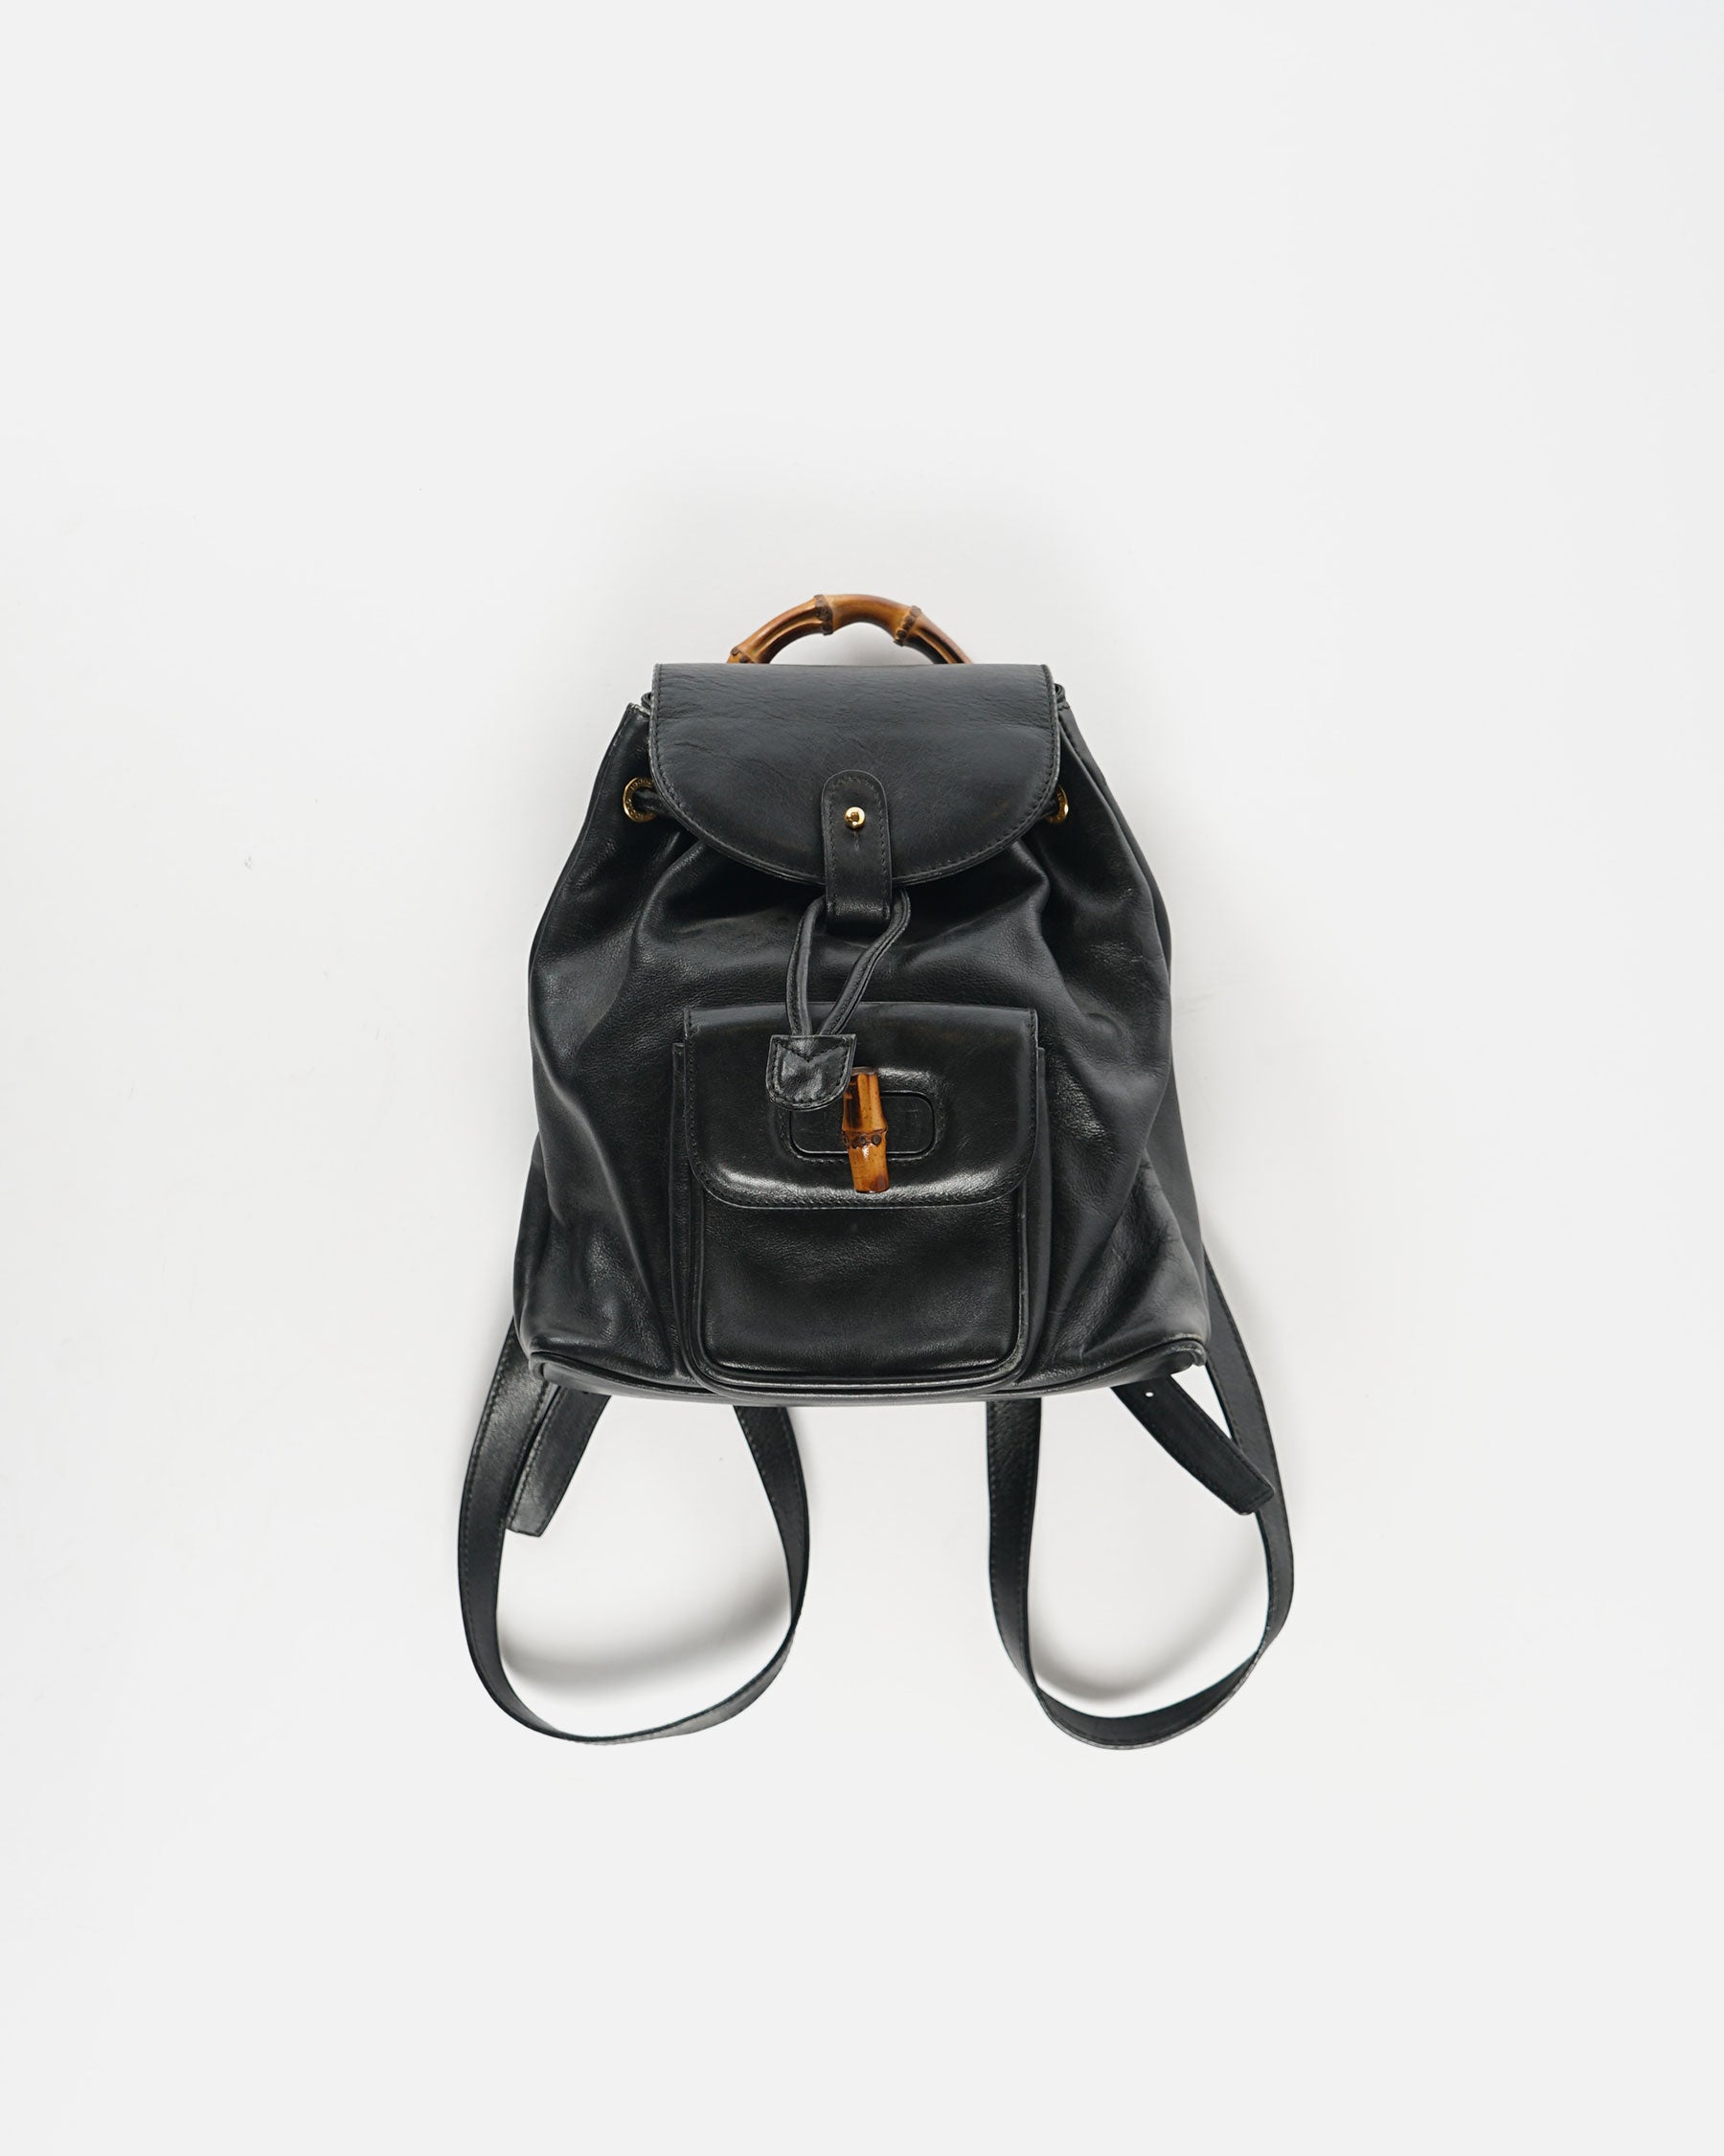 Black Leather Backpack With Bamboo Handle